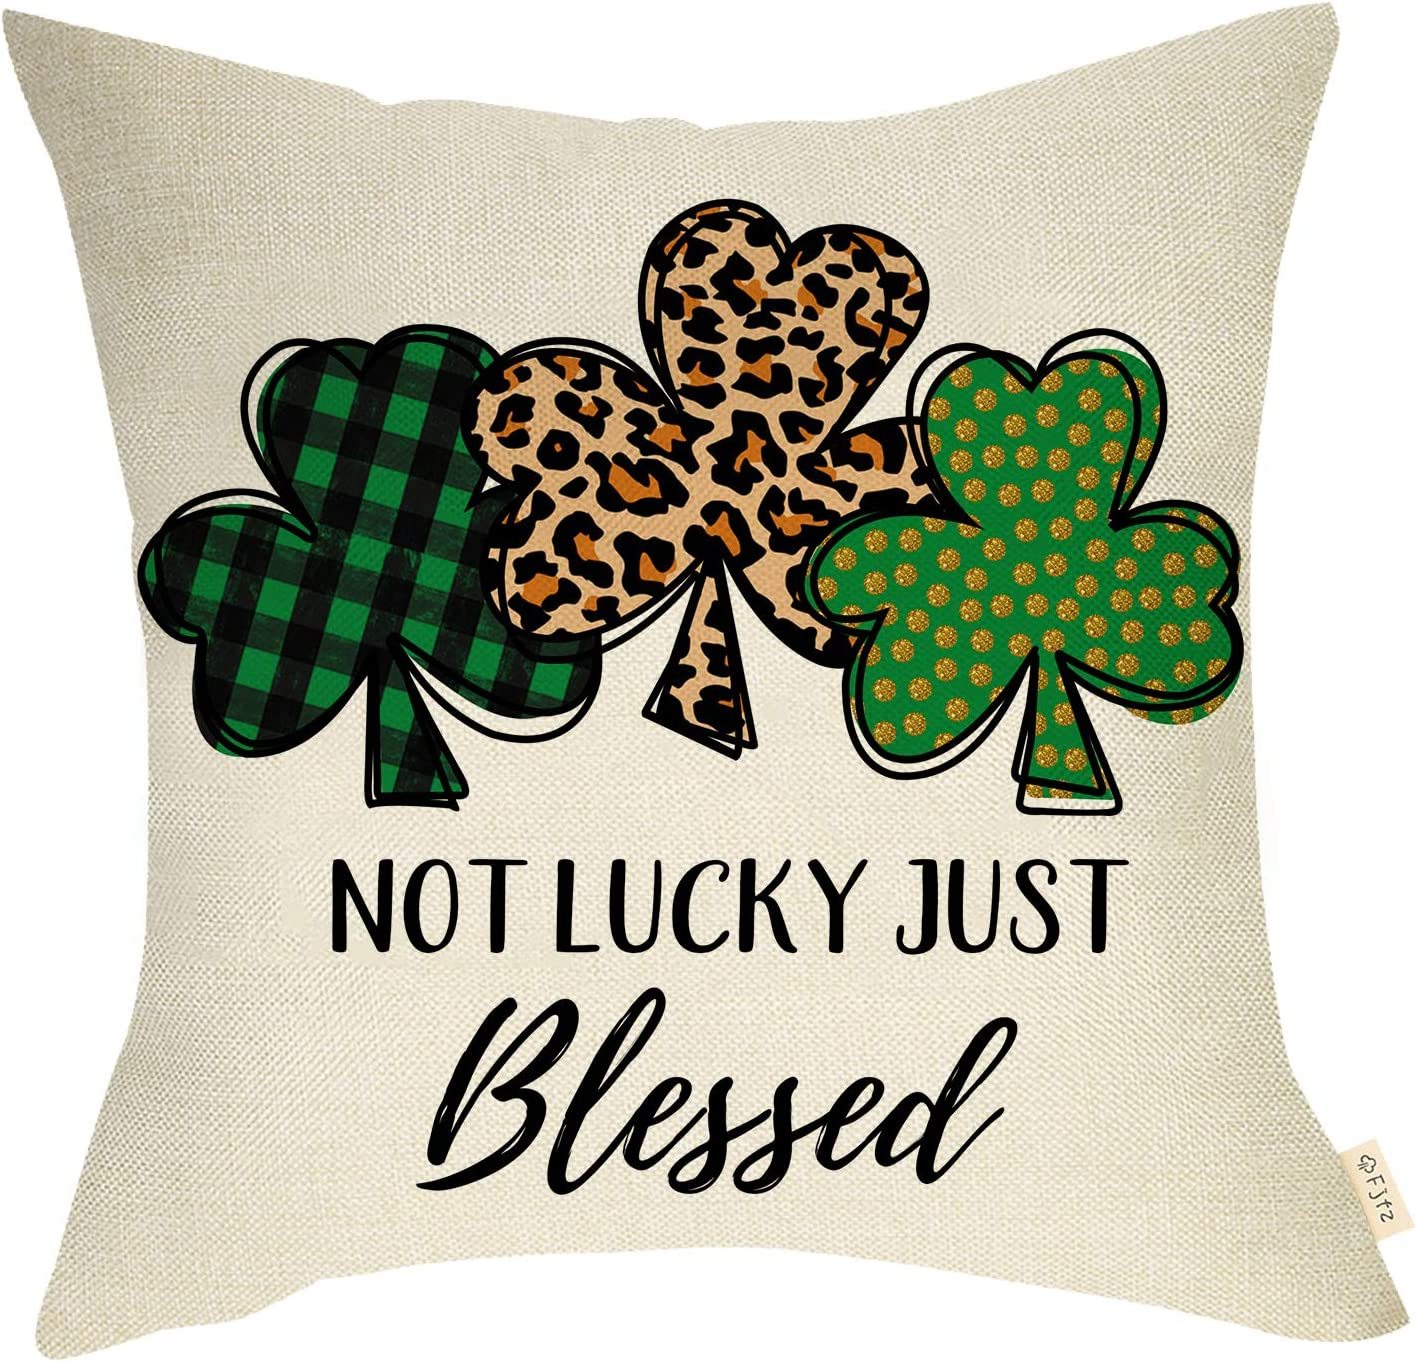 Fjfz St. Patrick's Day Farmhouse Decorative Throw Pillow Cover Not Lucky Just Blessed Sign Leopard Buffalo Plaid Shamrock Clover Decoration Home Décor Cotton Linen Cushion Case Sofa Couch 18